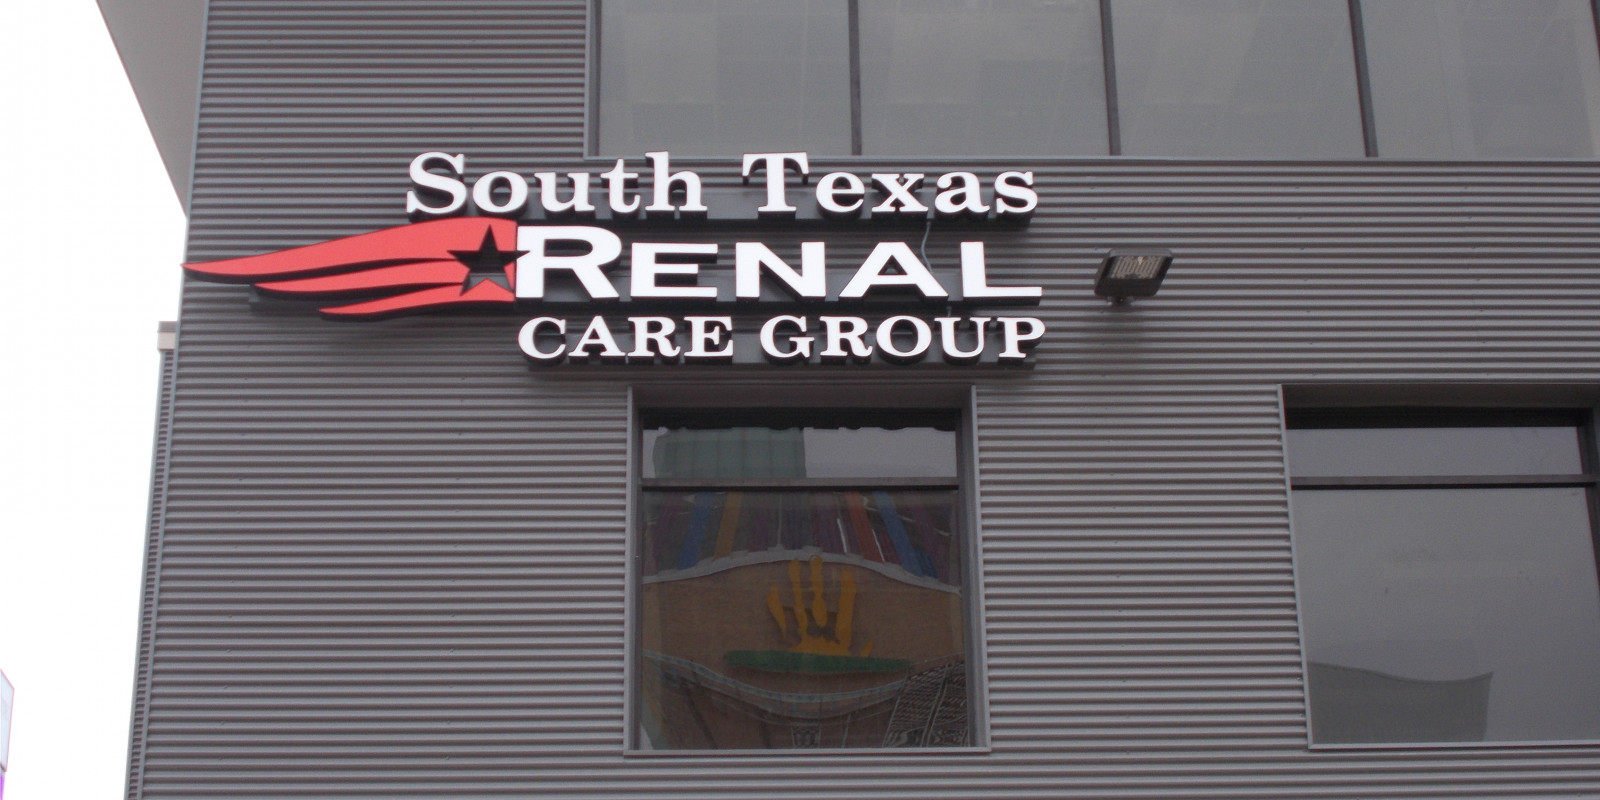 South Texas Renal Care Channel Letters